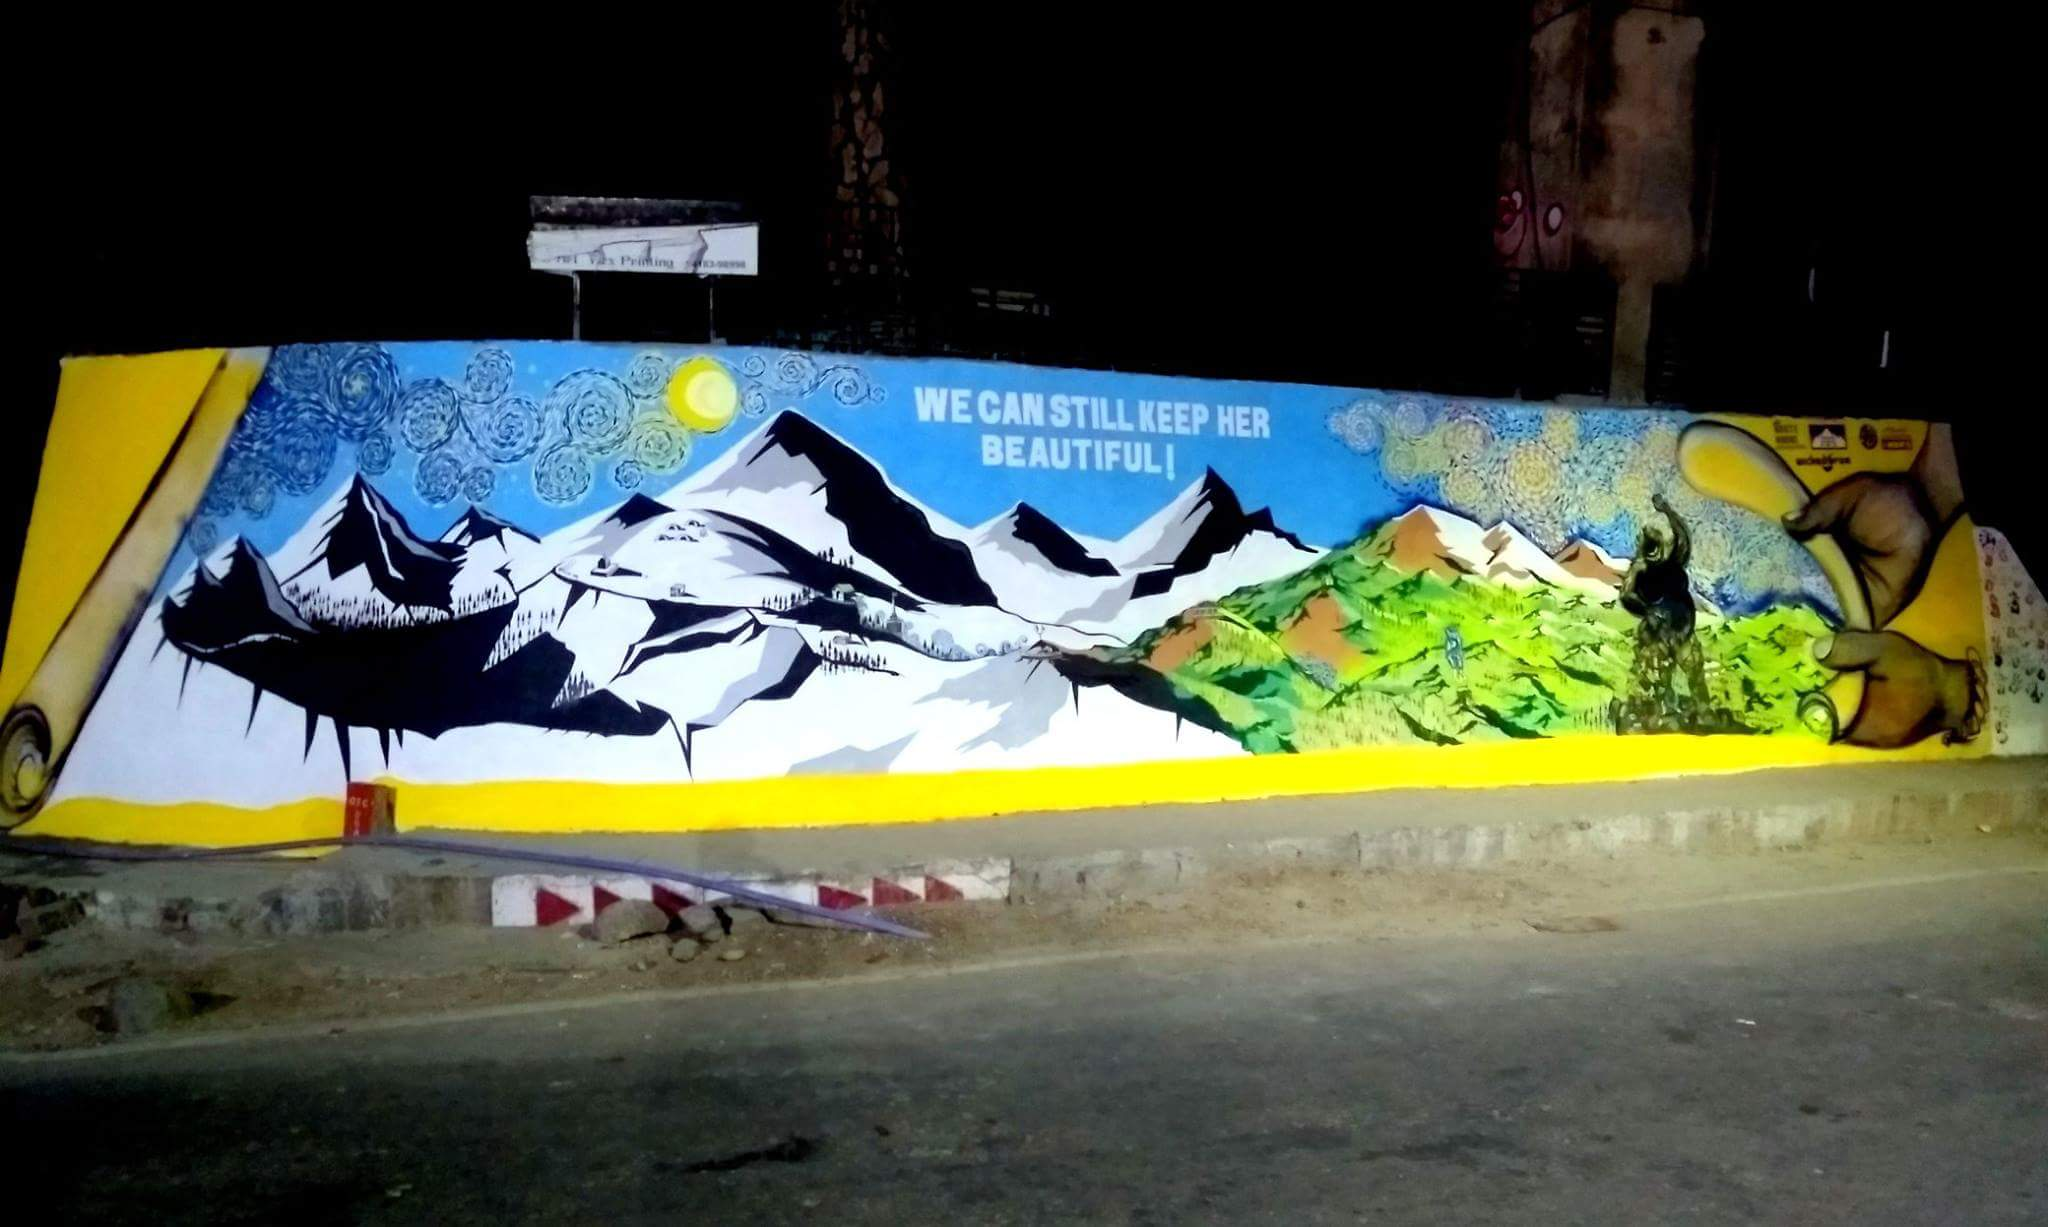 Waste Warriors night wide-angle Dharamsala Gandhi Park mural